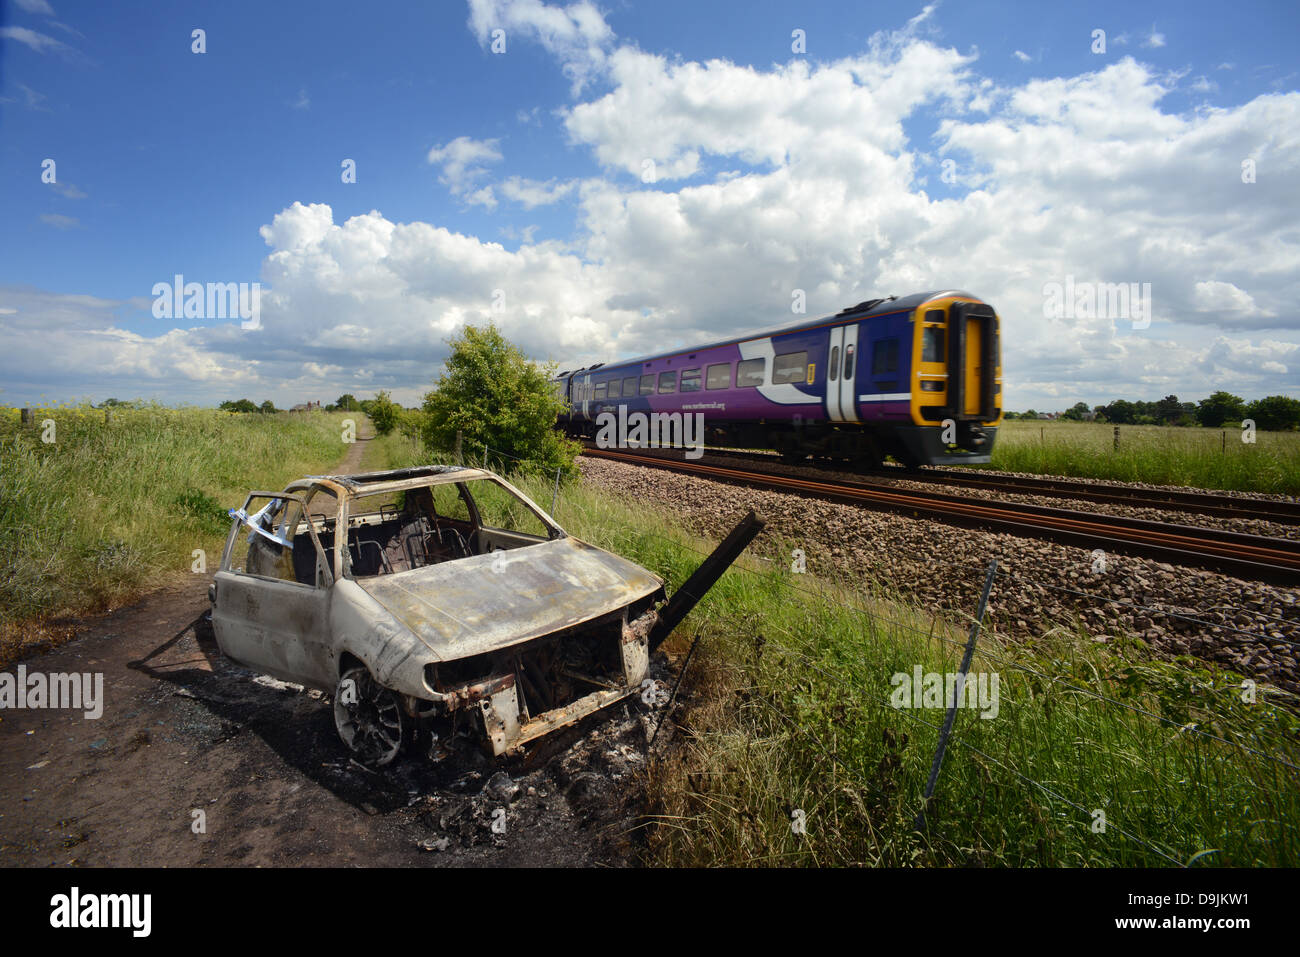 northern rail train passing burnt out and abandoned car leeds united kingdom - Stock Image